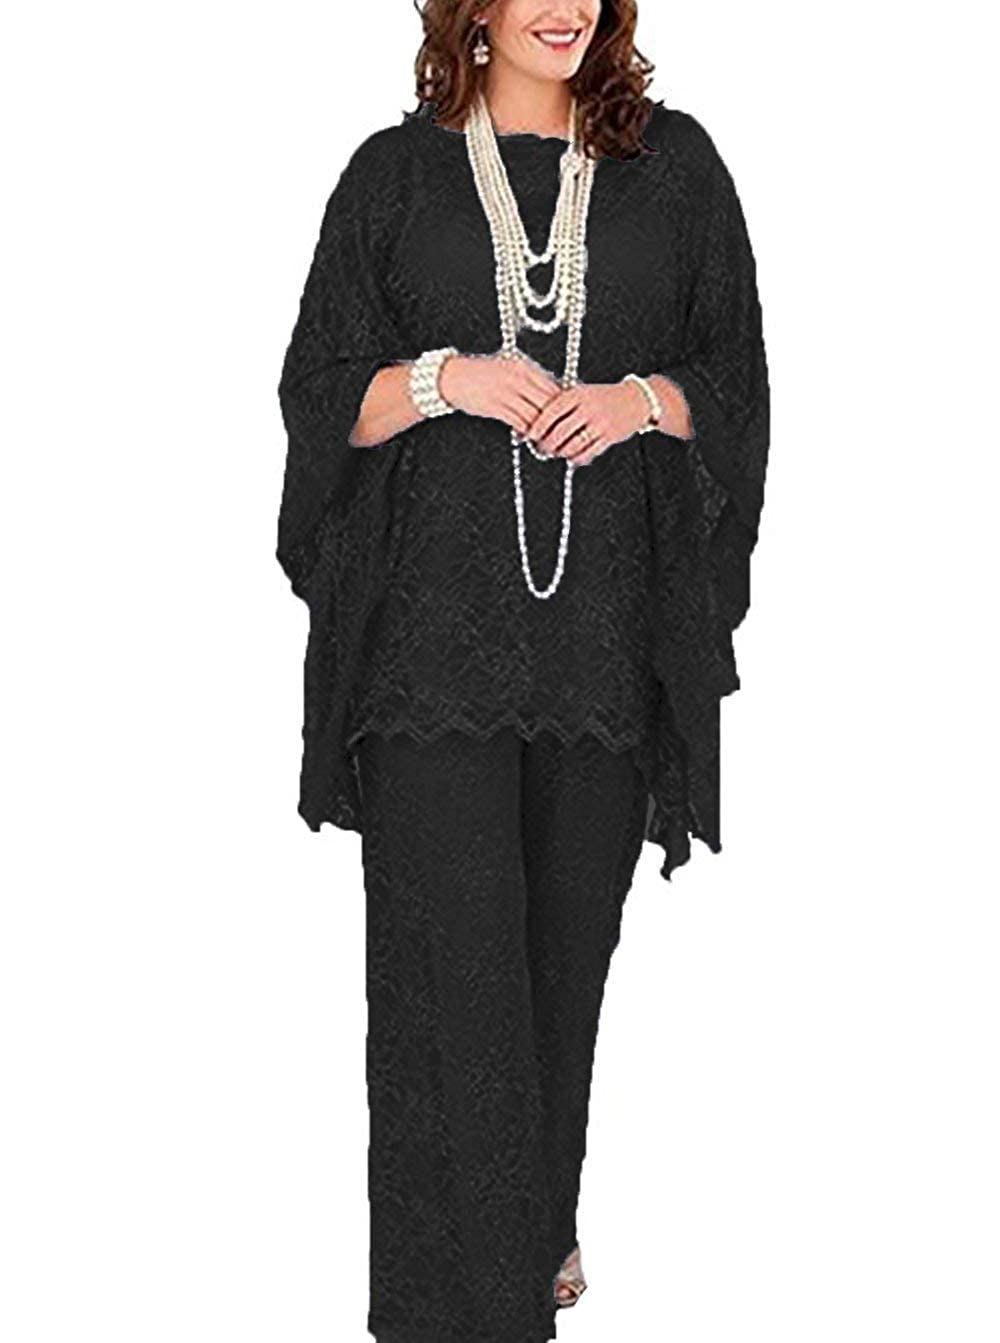 Black Women's 3 Pieces lace Mother of Bride Dress Pant Suits Long Sleeves